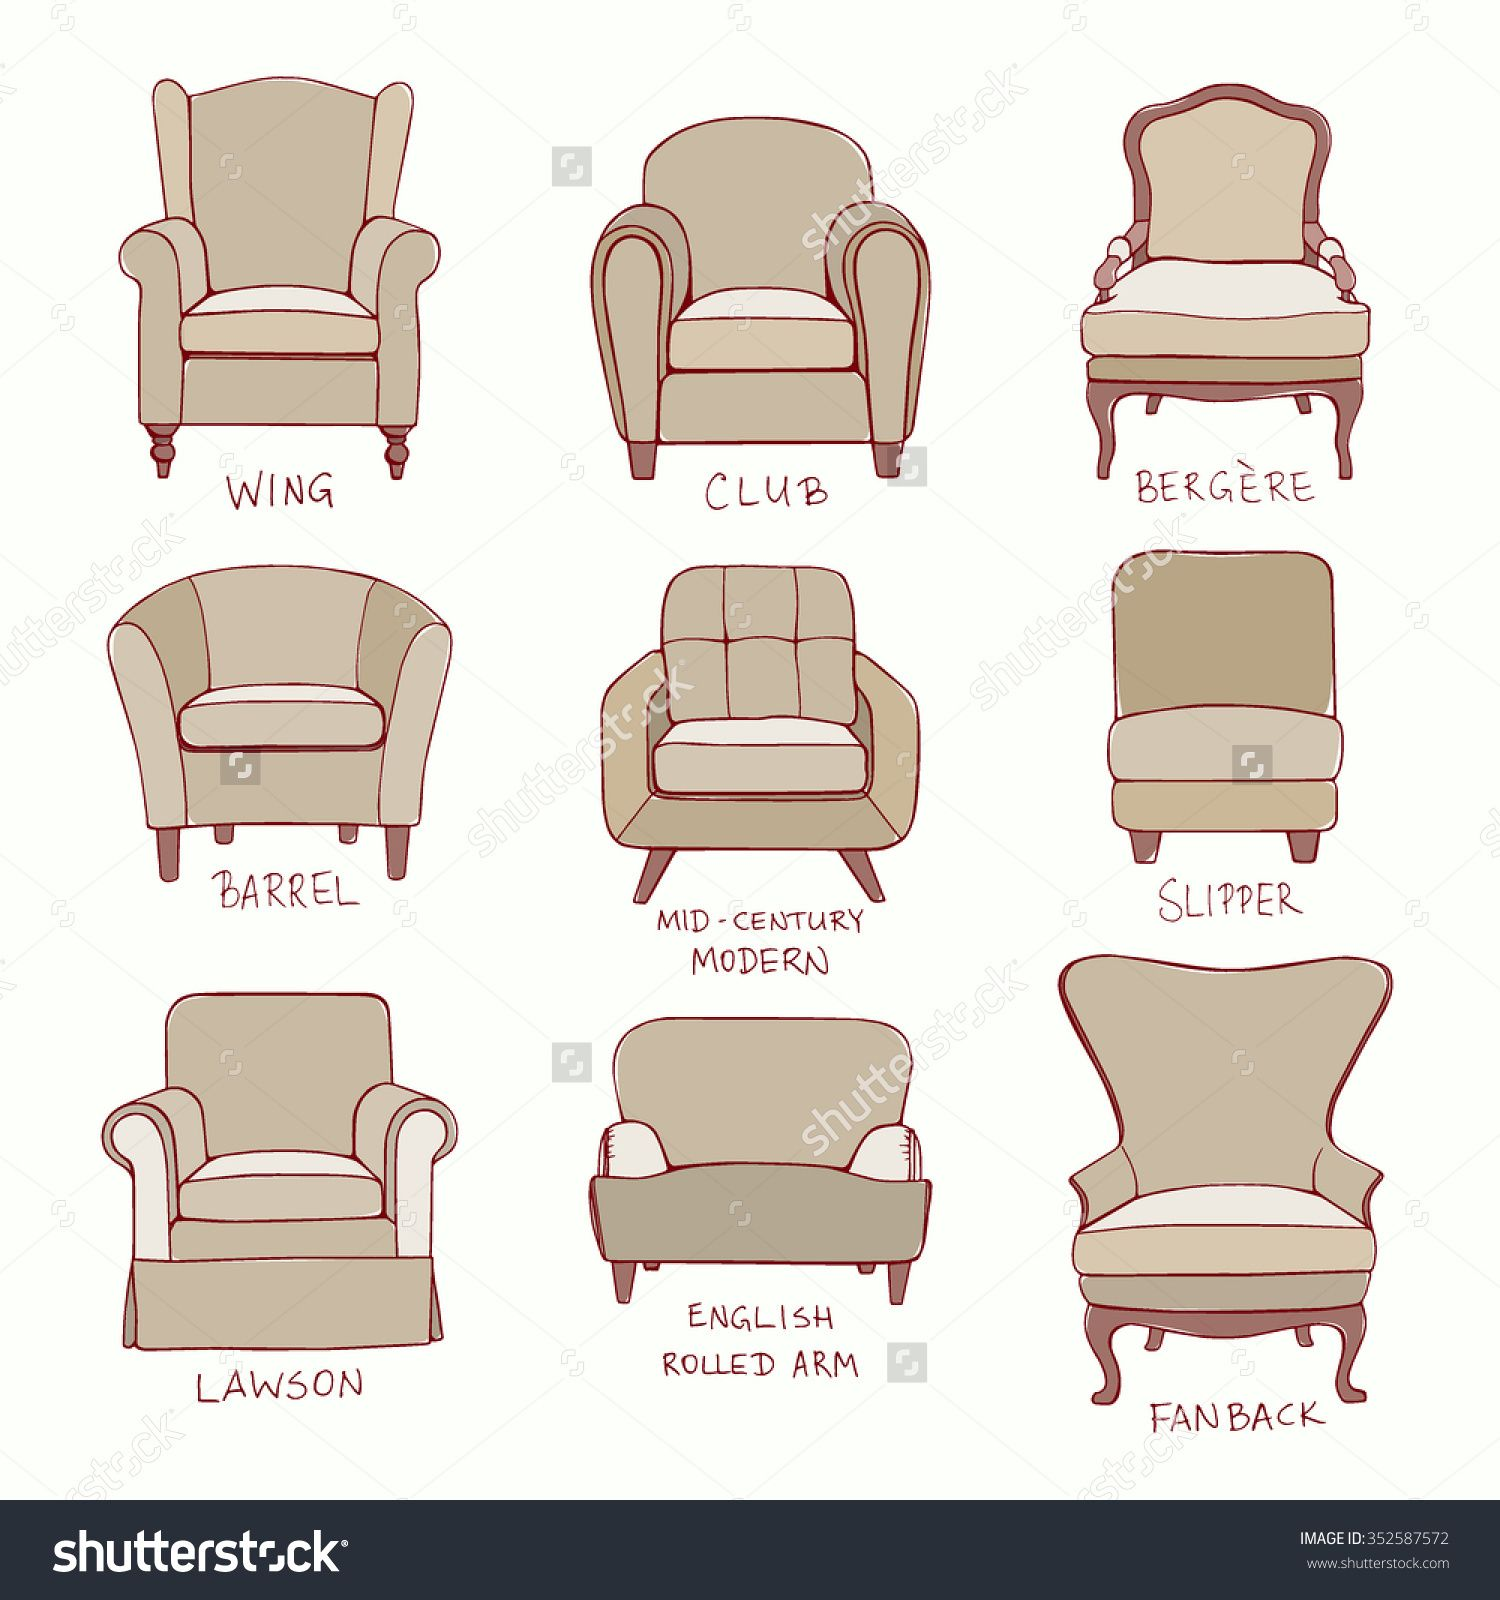 Styles Of Chairs Armchair Styles Table And Chairs Chair Design Chair